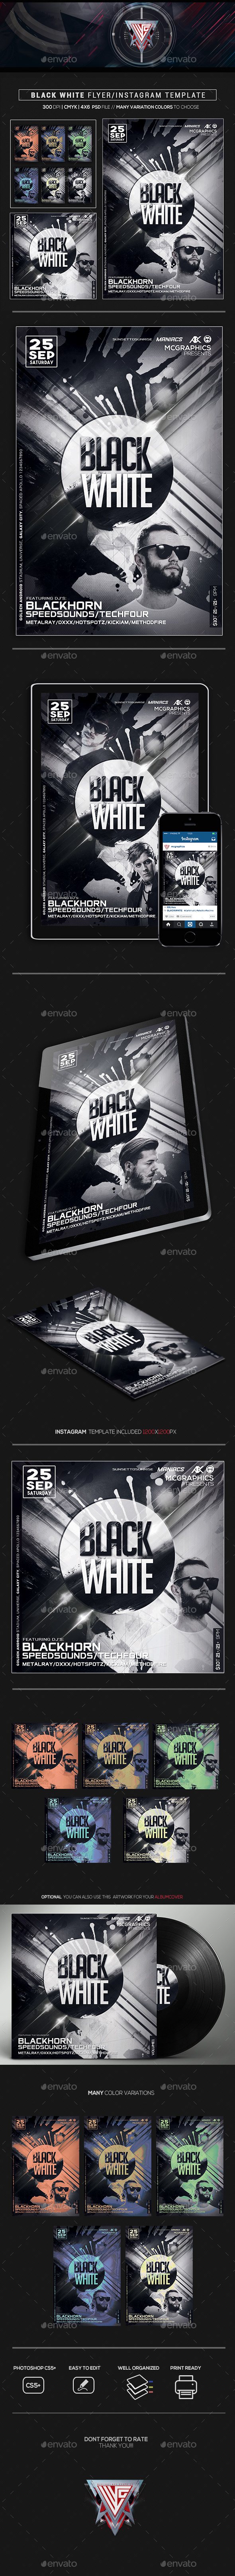 Black White Flyer/Instagram Template - Flyers Print Templates